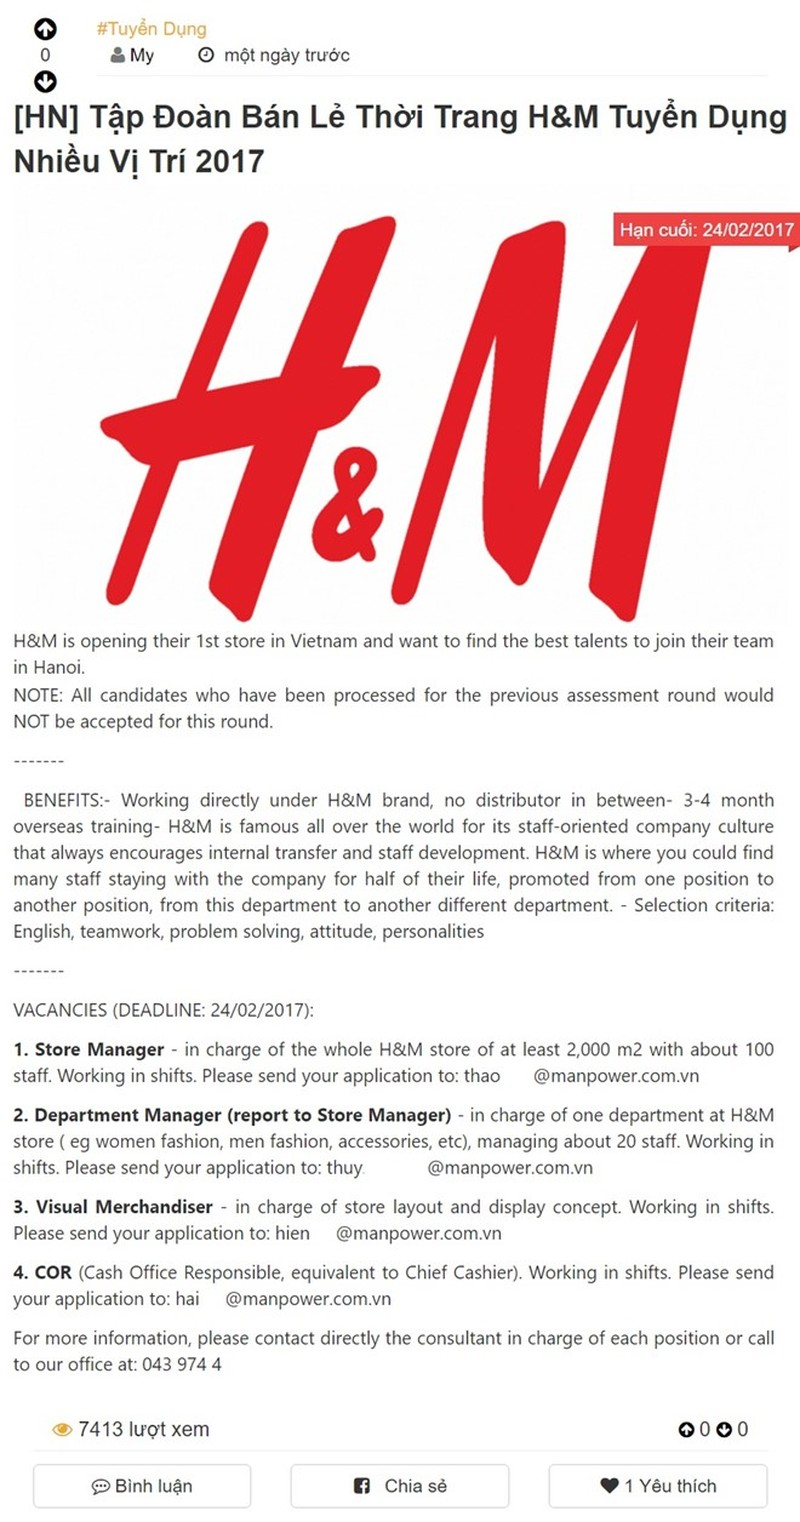 Hot: H&M mo cua hang dau tien o Ha Noi?